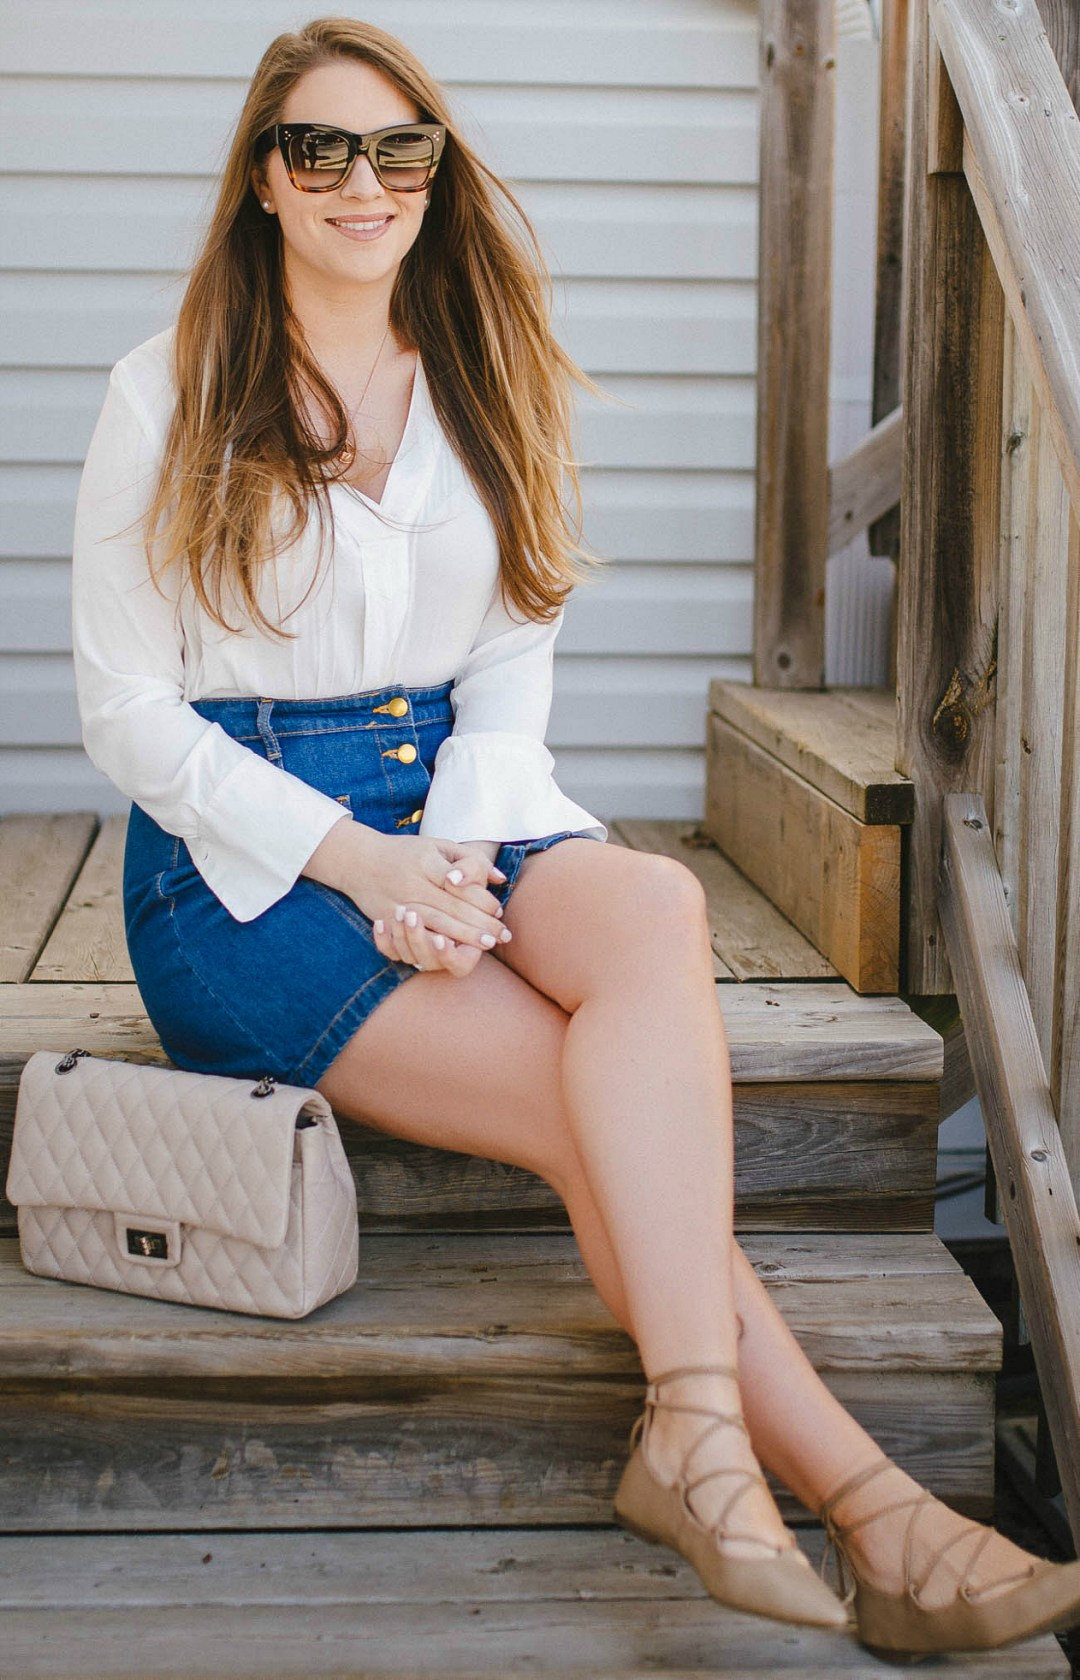 Gleam-Melanie Mills Hollywood-fortune-necklace-rosecitystyleguide-canadian-blogger-spring-outfit-laceup-flats-quilted-bag-button-front-skirt